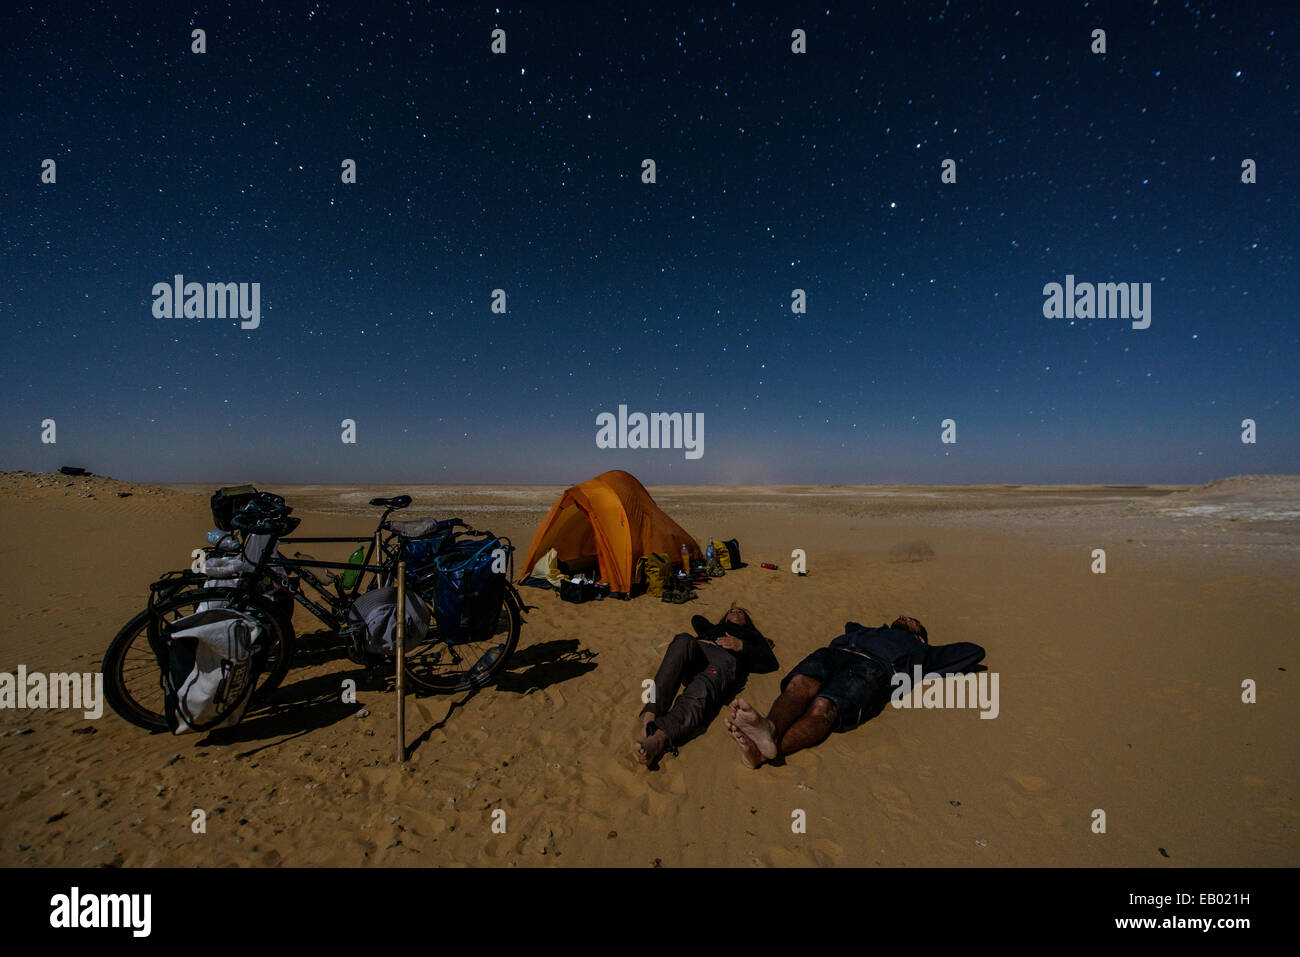 Couple sleeping under the stars in the Sahara Desert, Egypt - Stock Image